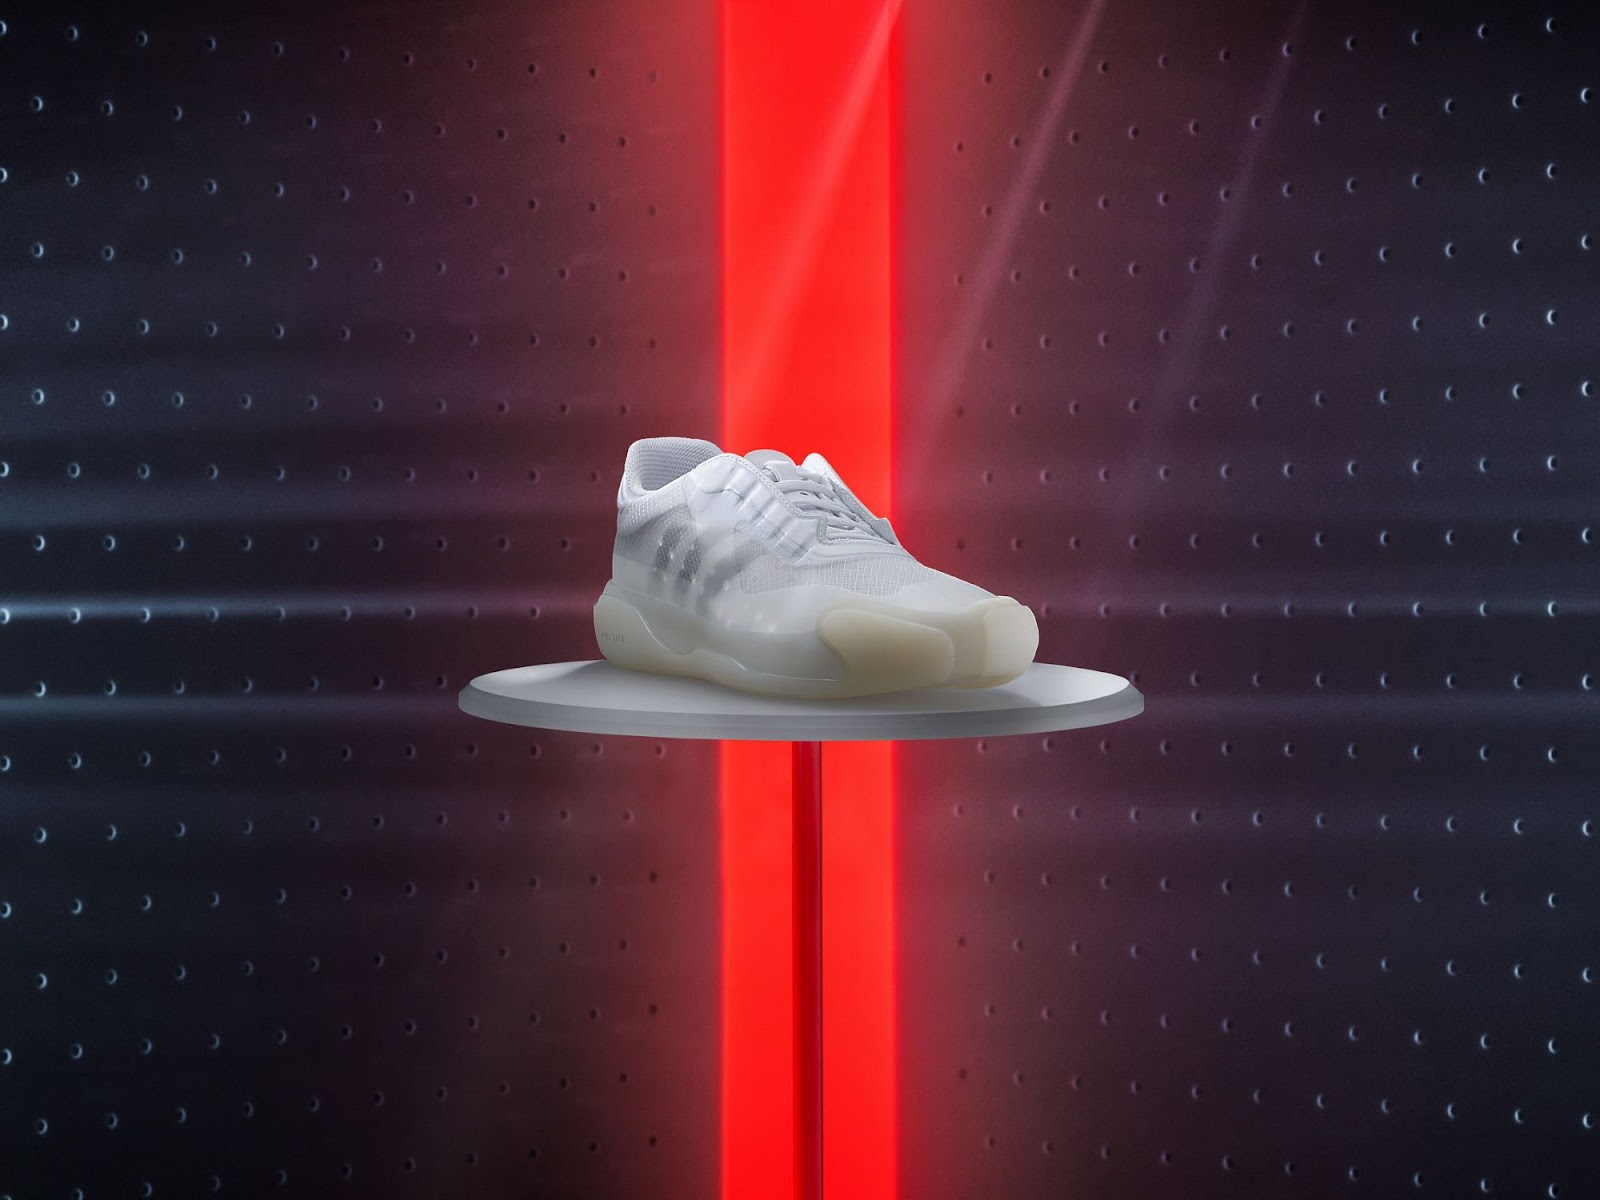 adidas x Prada - the A+P LUNA ROSSA tennis shoe, created for cruising 2